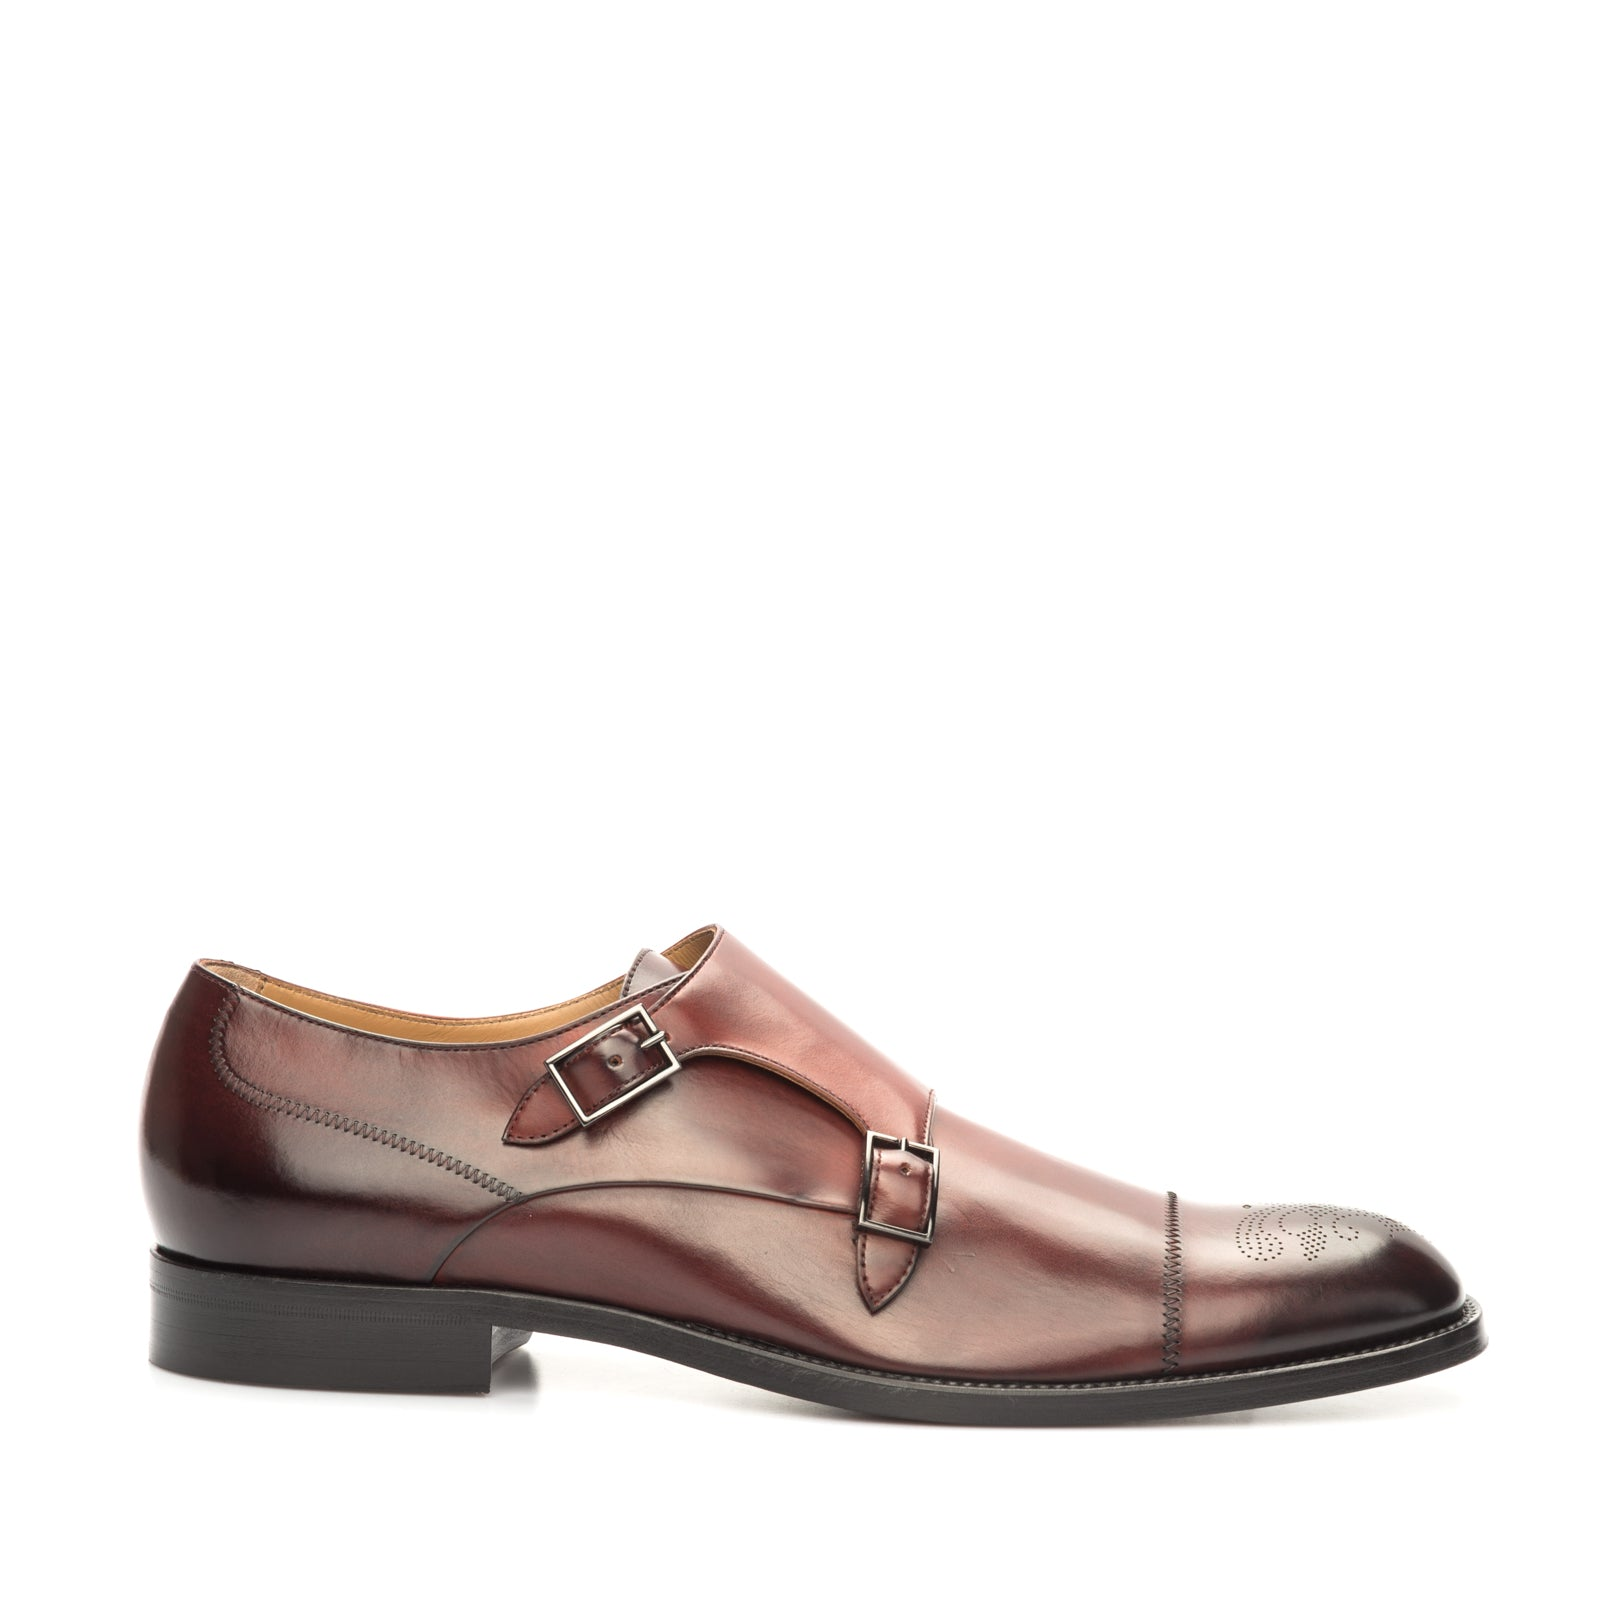 Double-Monk Leather Shoes-HUGO BOSS-SHOPATVOI.COM - Luxury Fashion Designer